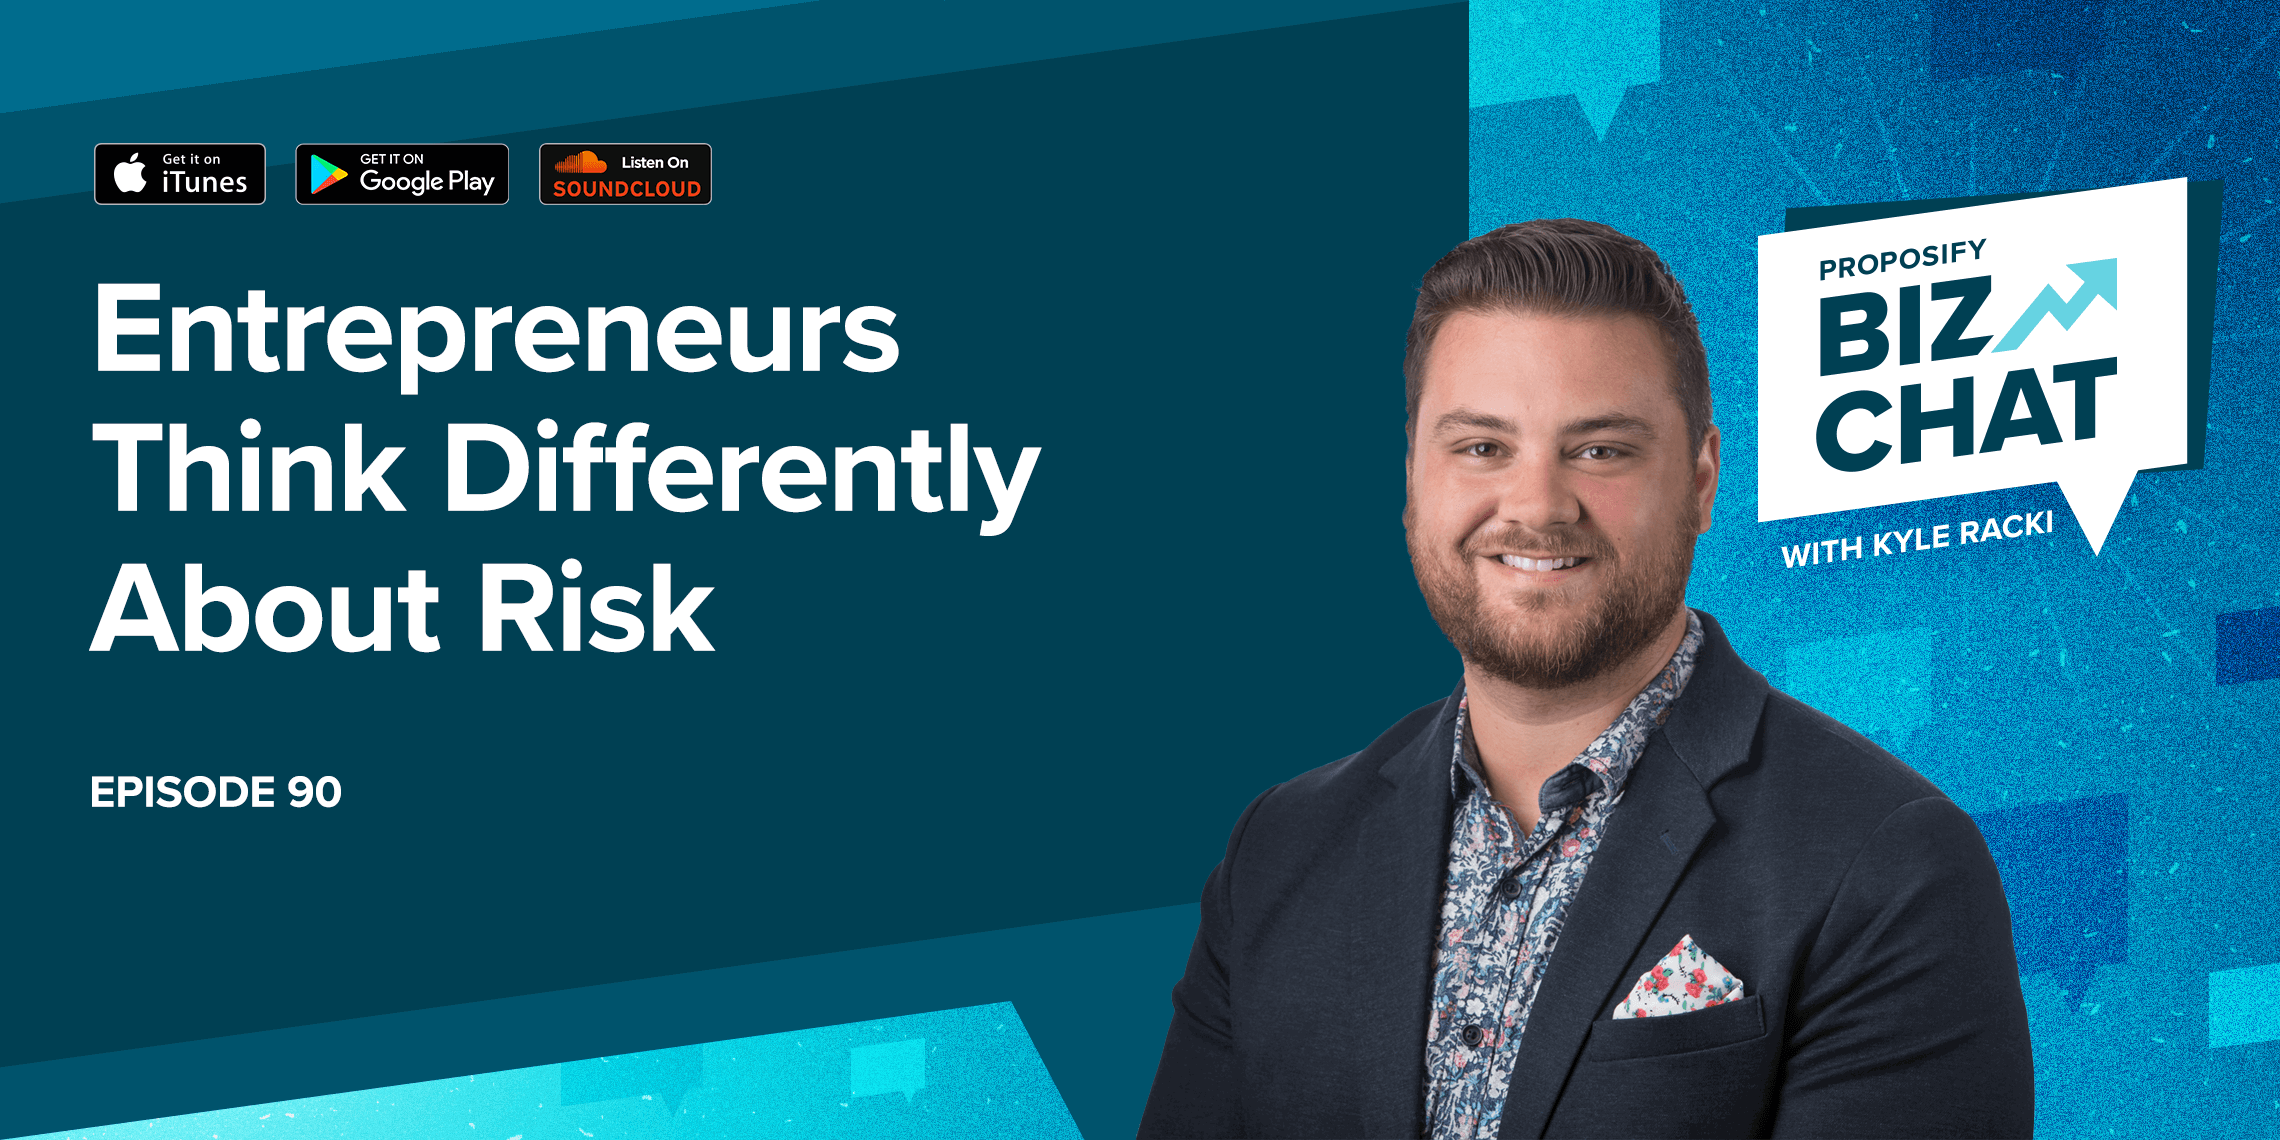 Entrepreneurs Think Differently About Risk